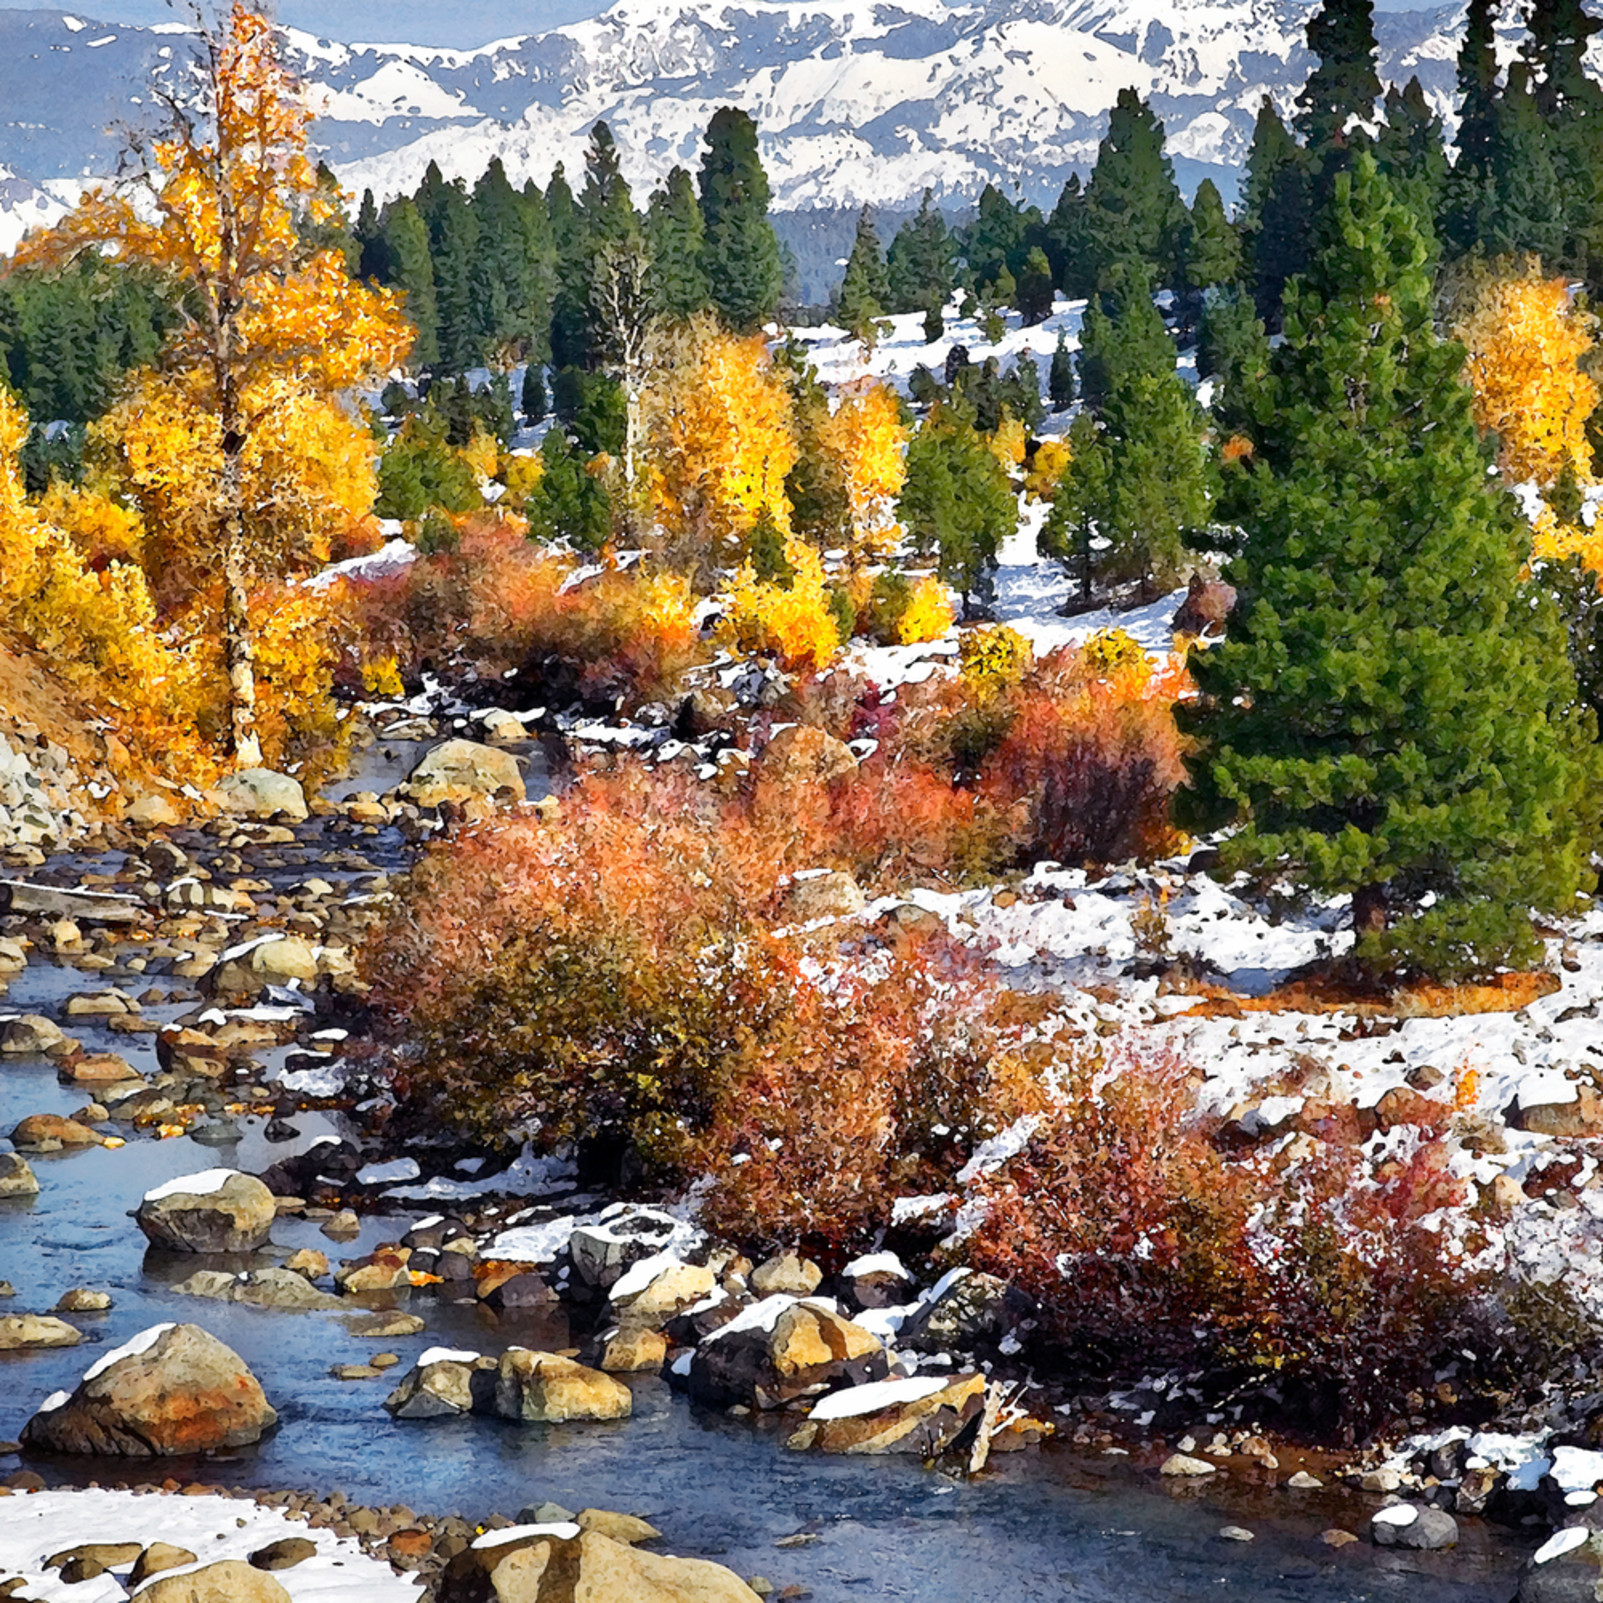 First snow truckee river iuirti